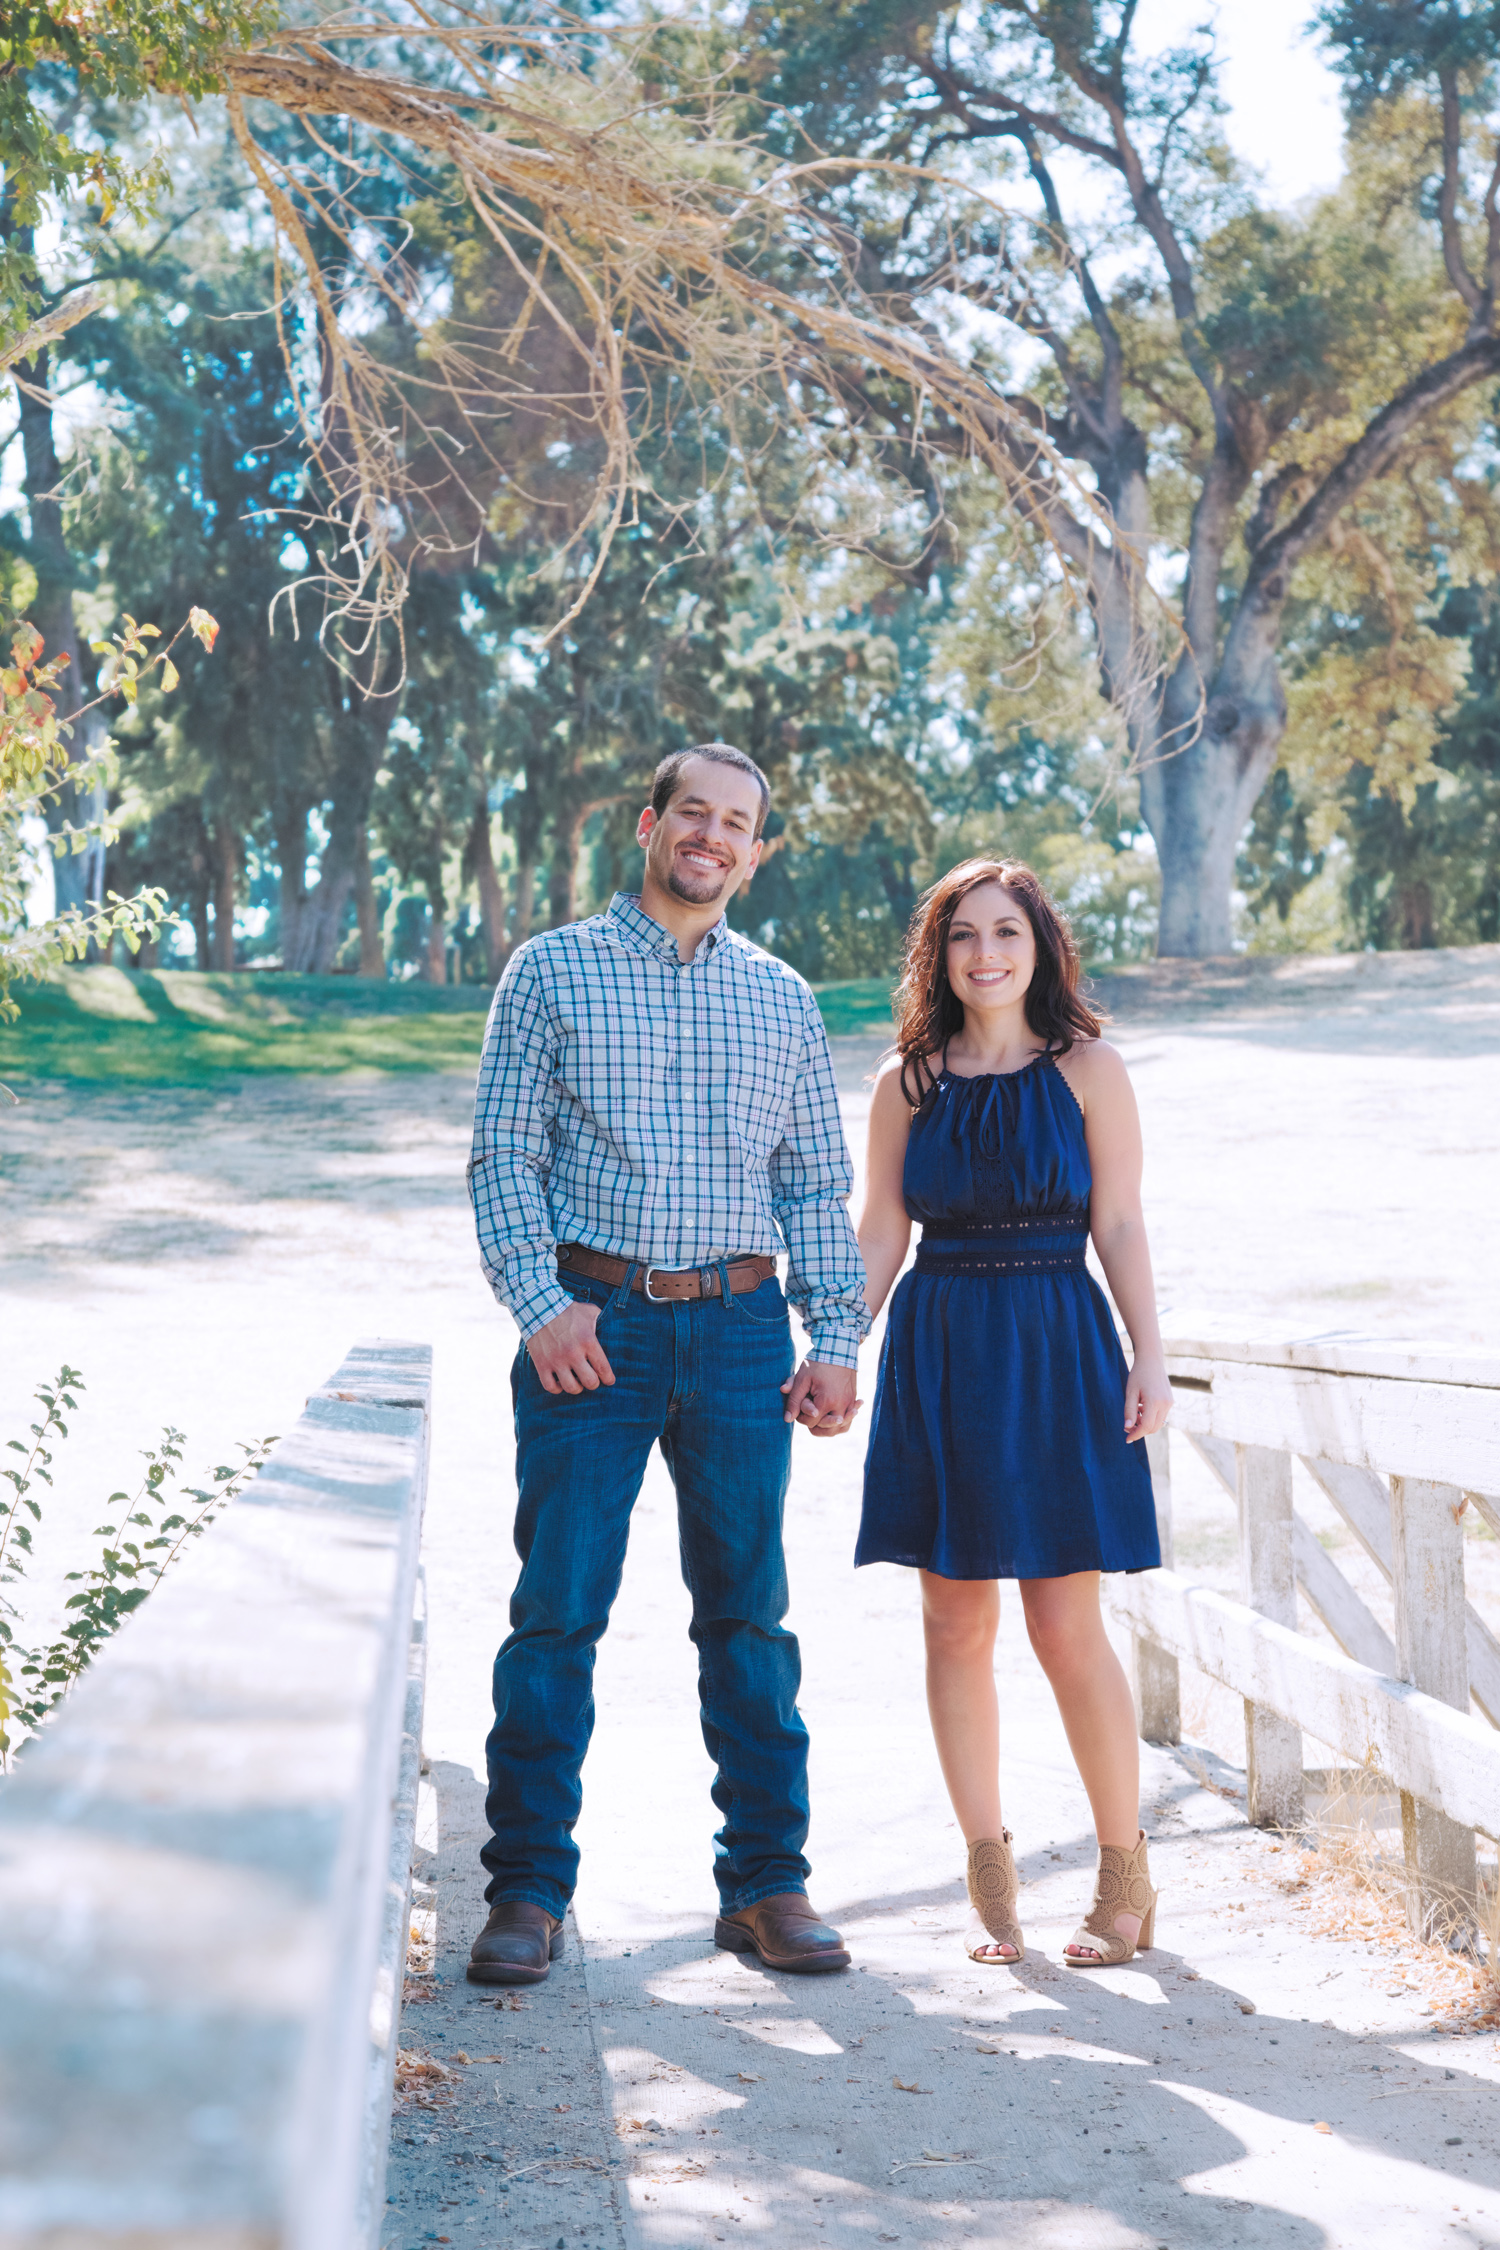 Gibson ranch engagement photography3.jpg